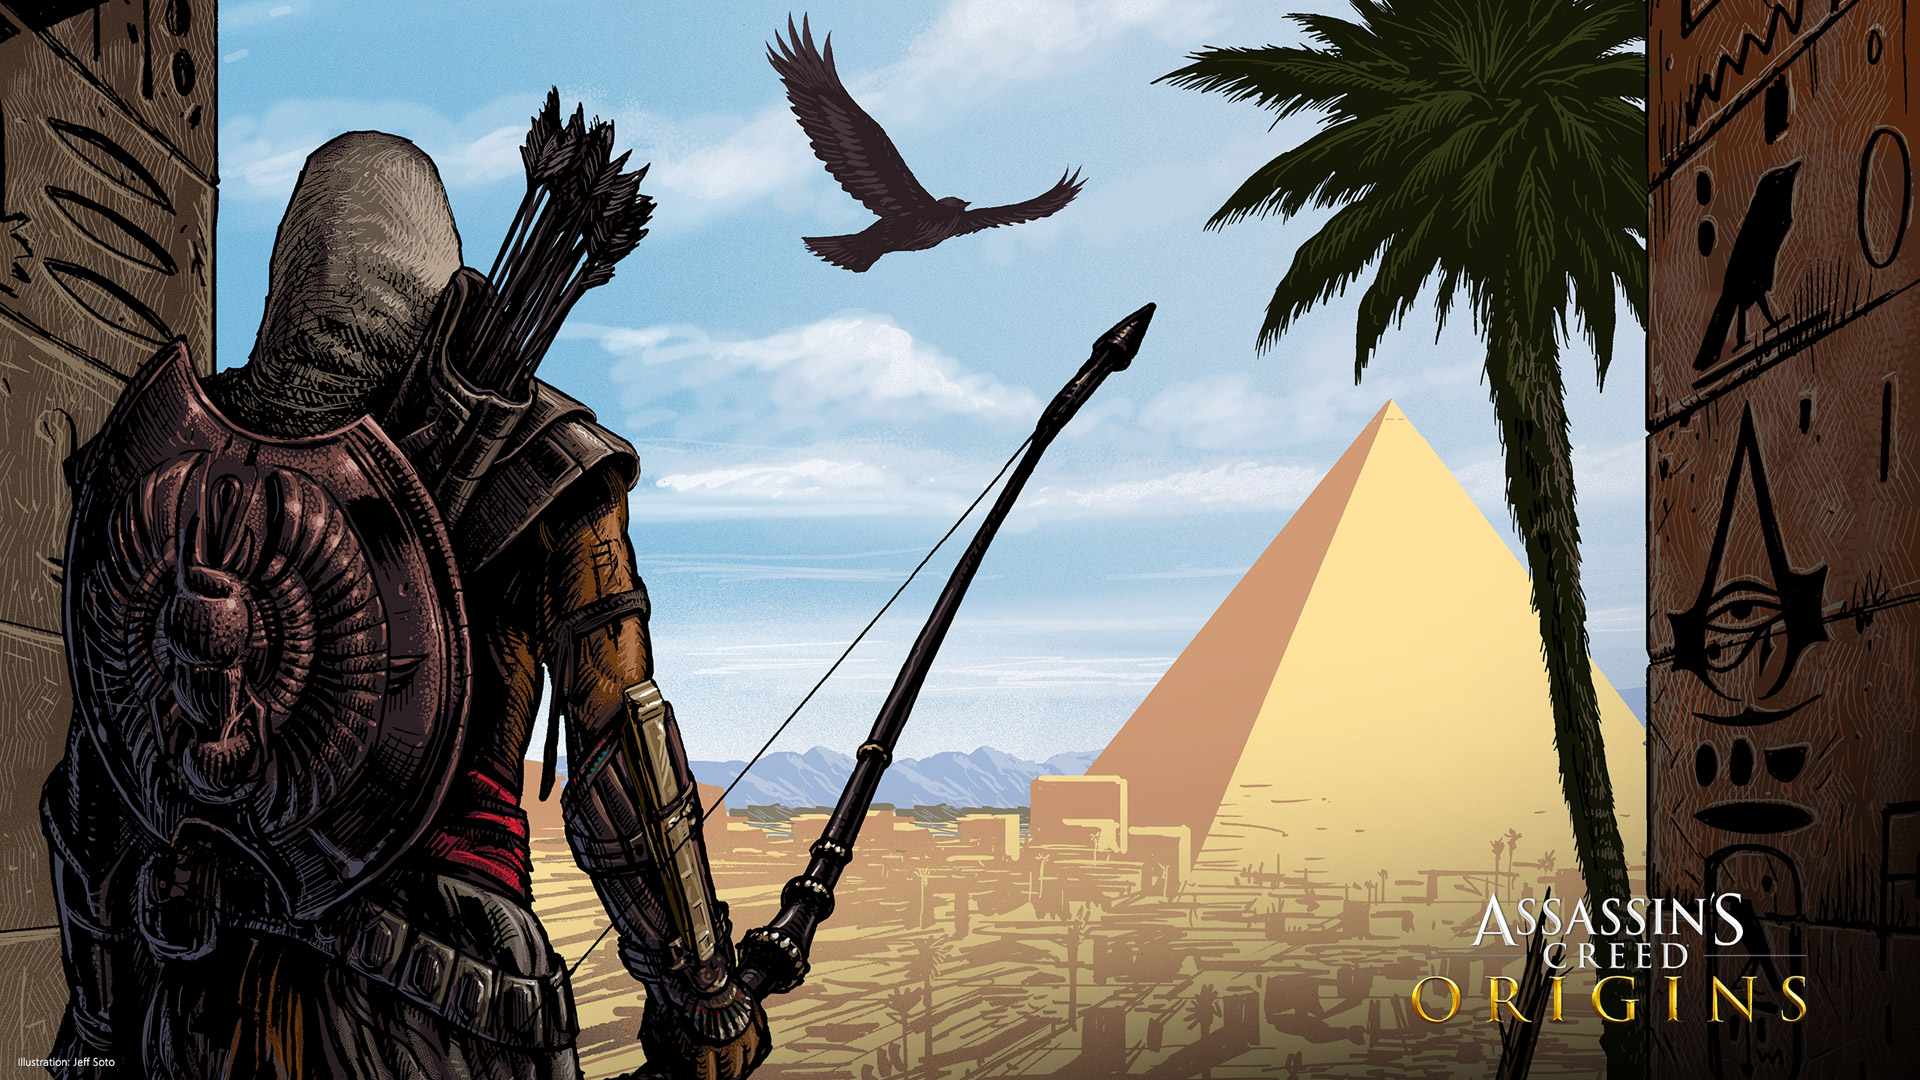 Assassin's Creed Origins Wallpaper in 1920x1080